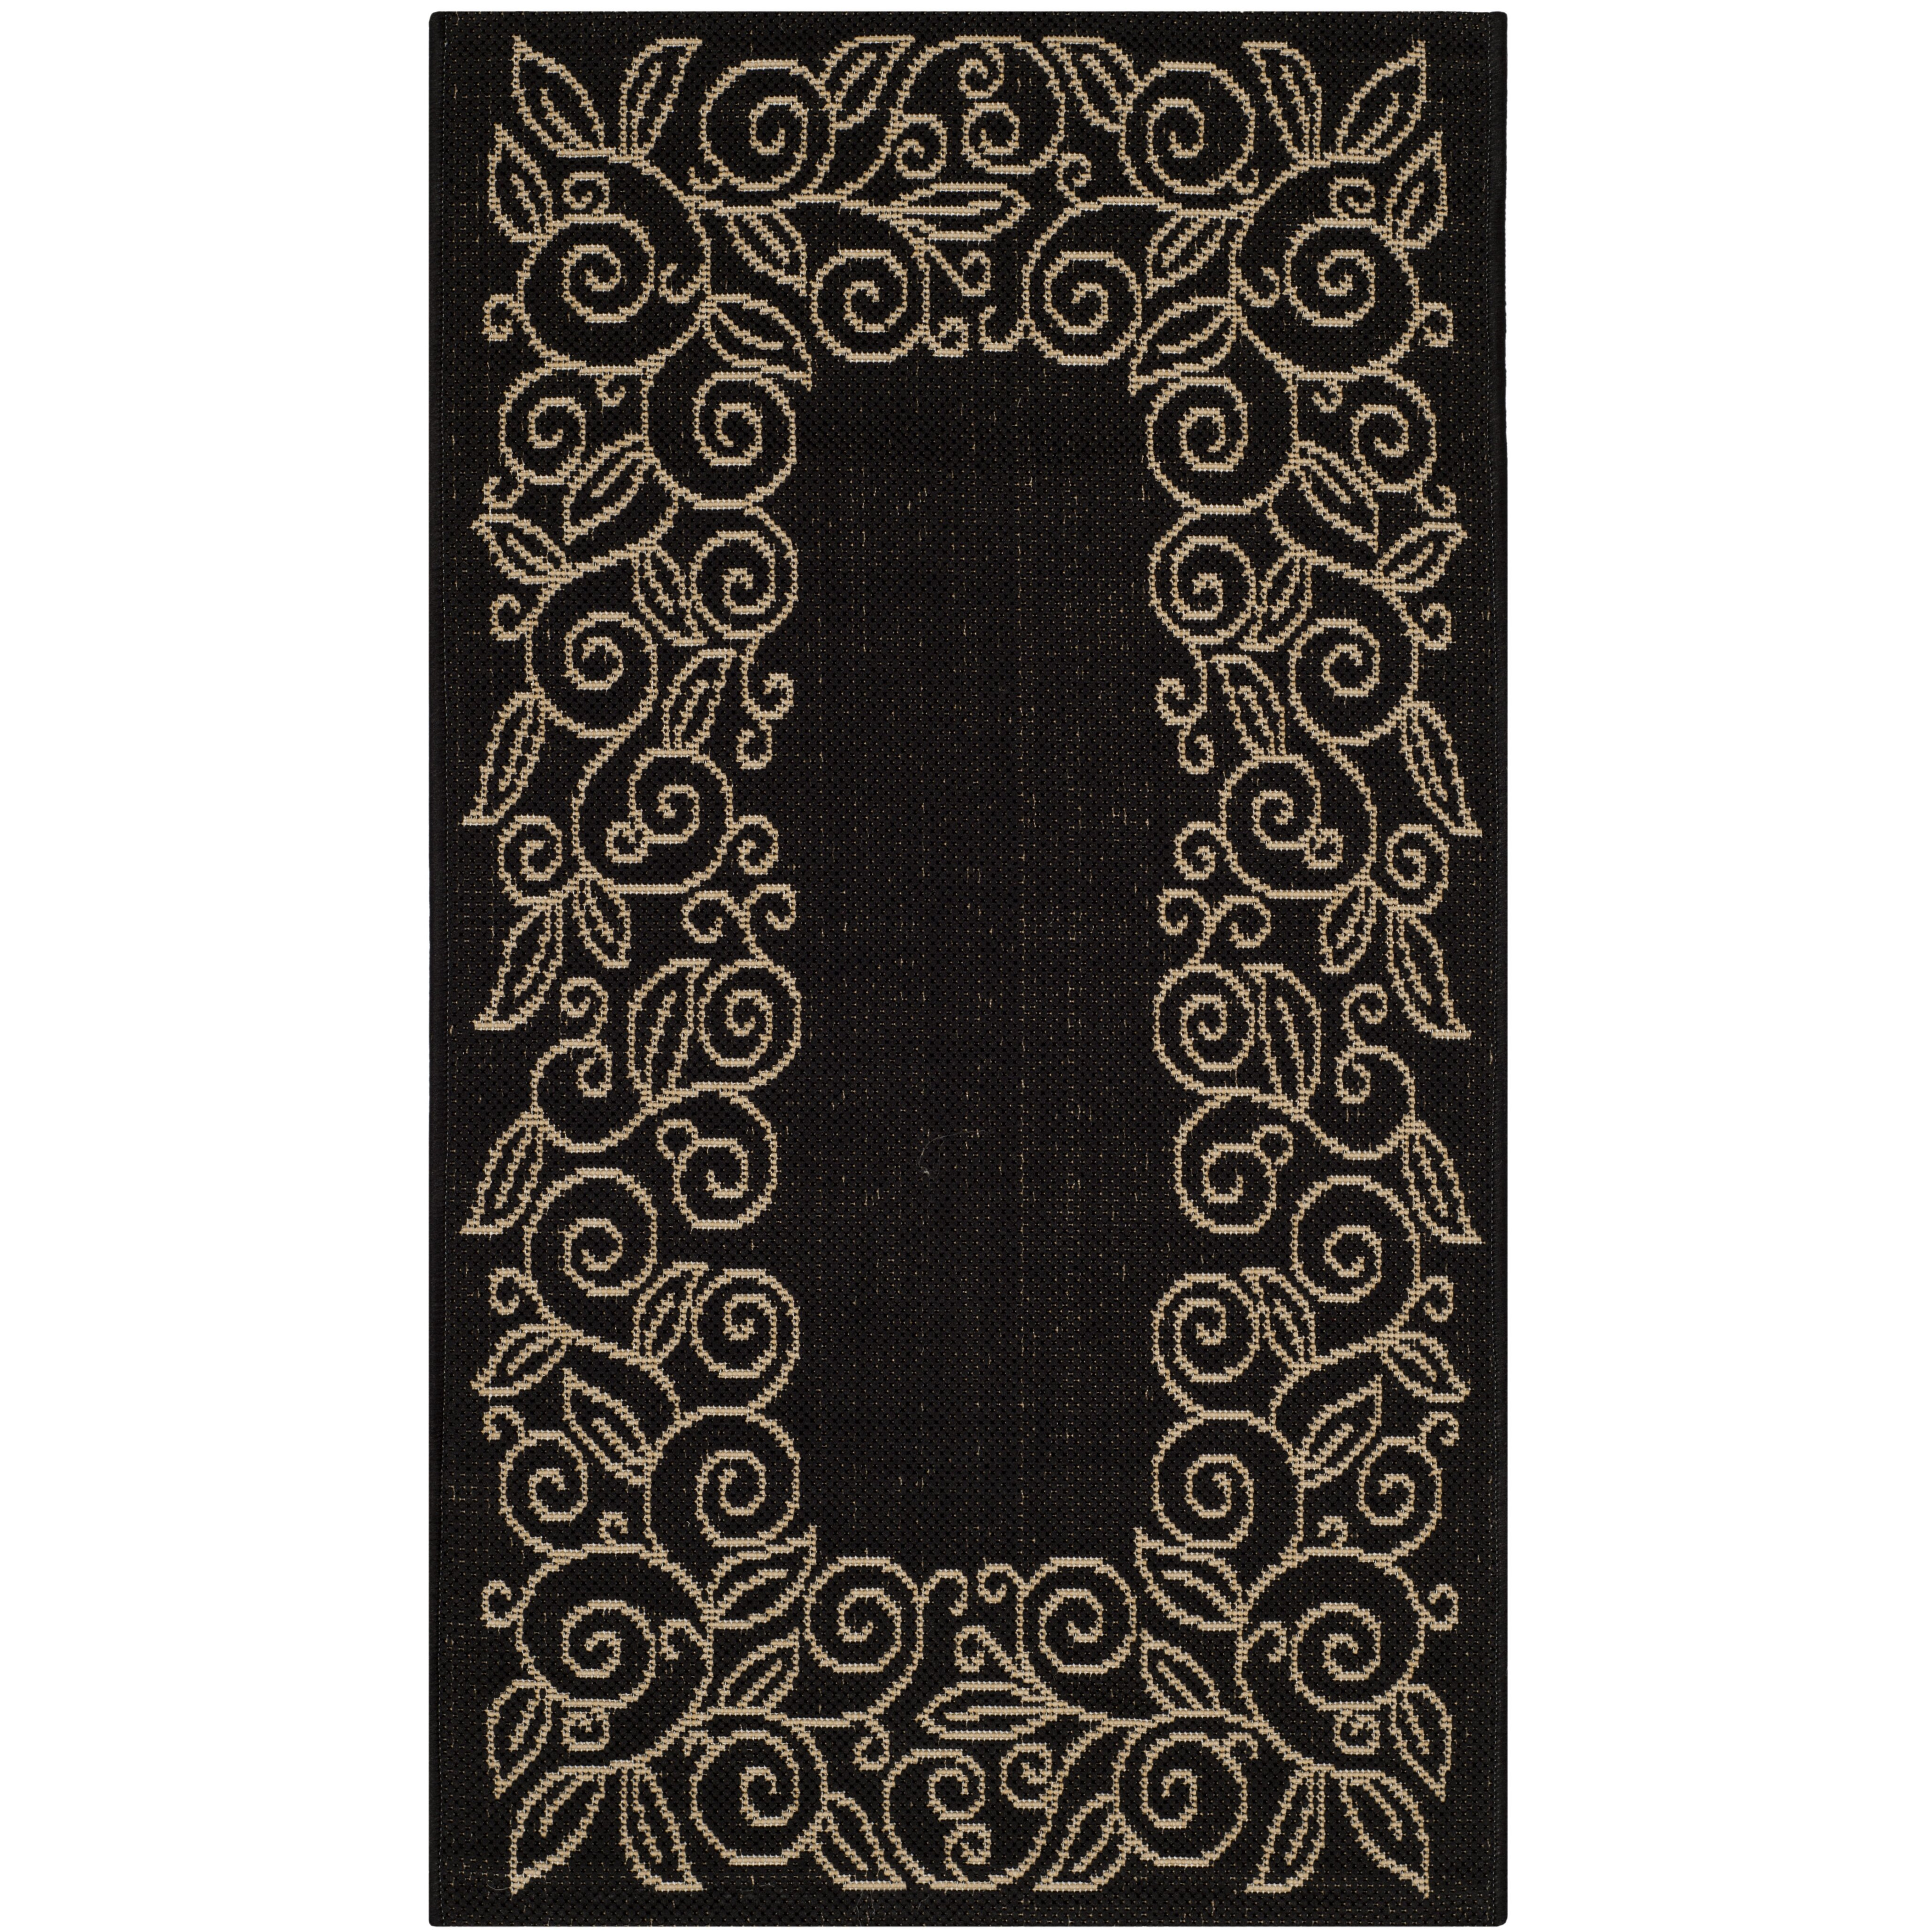 Black And White Rug Outdoor: Safavieh Courtyard Black/Sand Outdoor Rug & Reviews